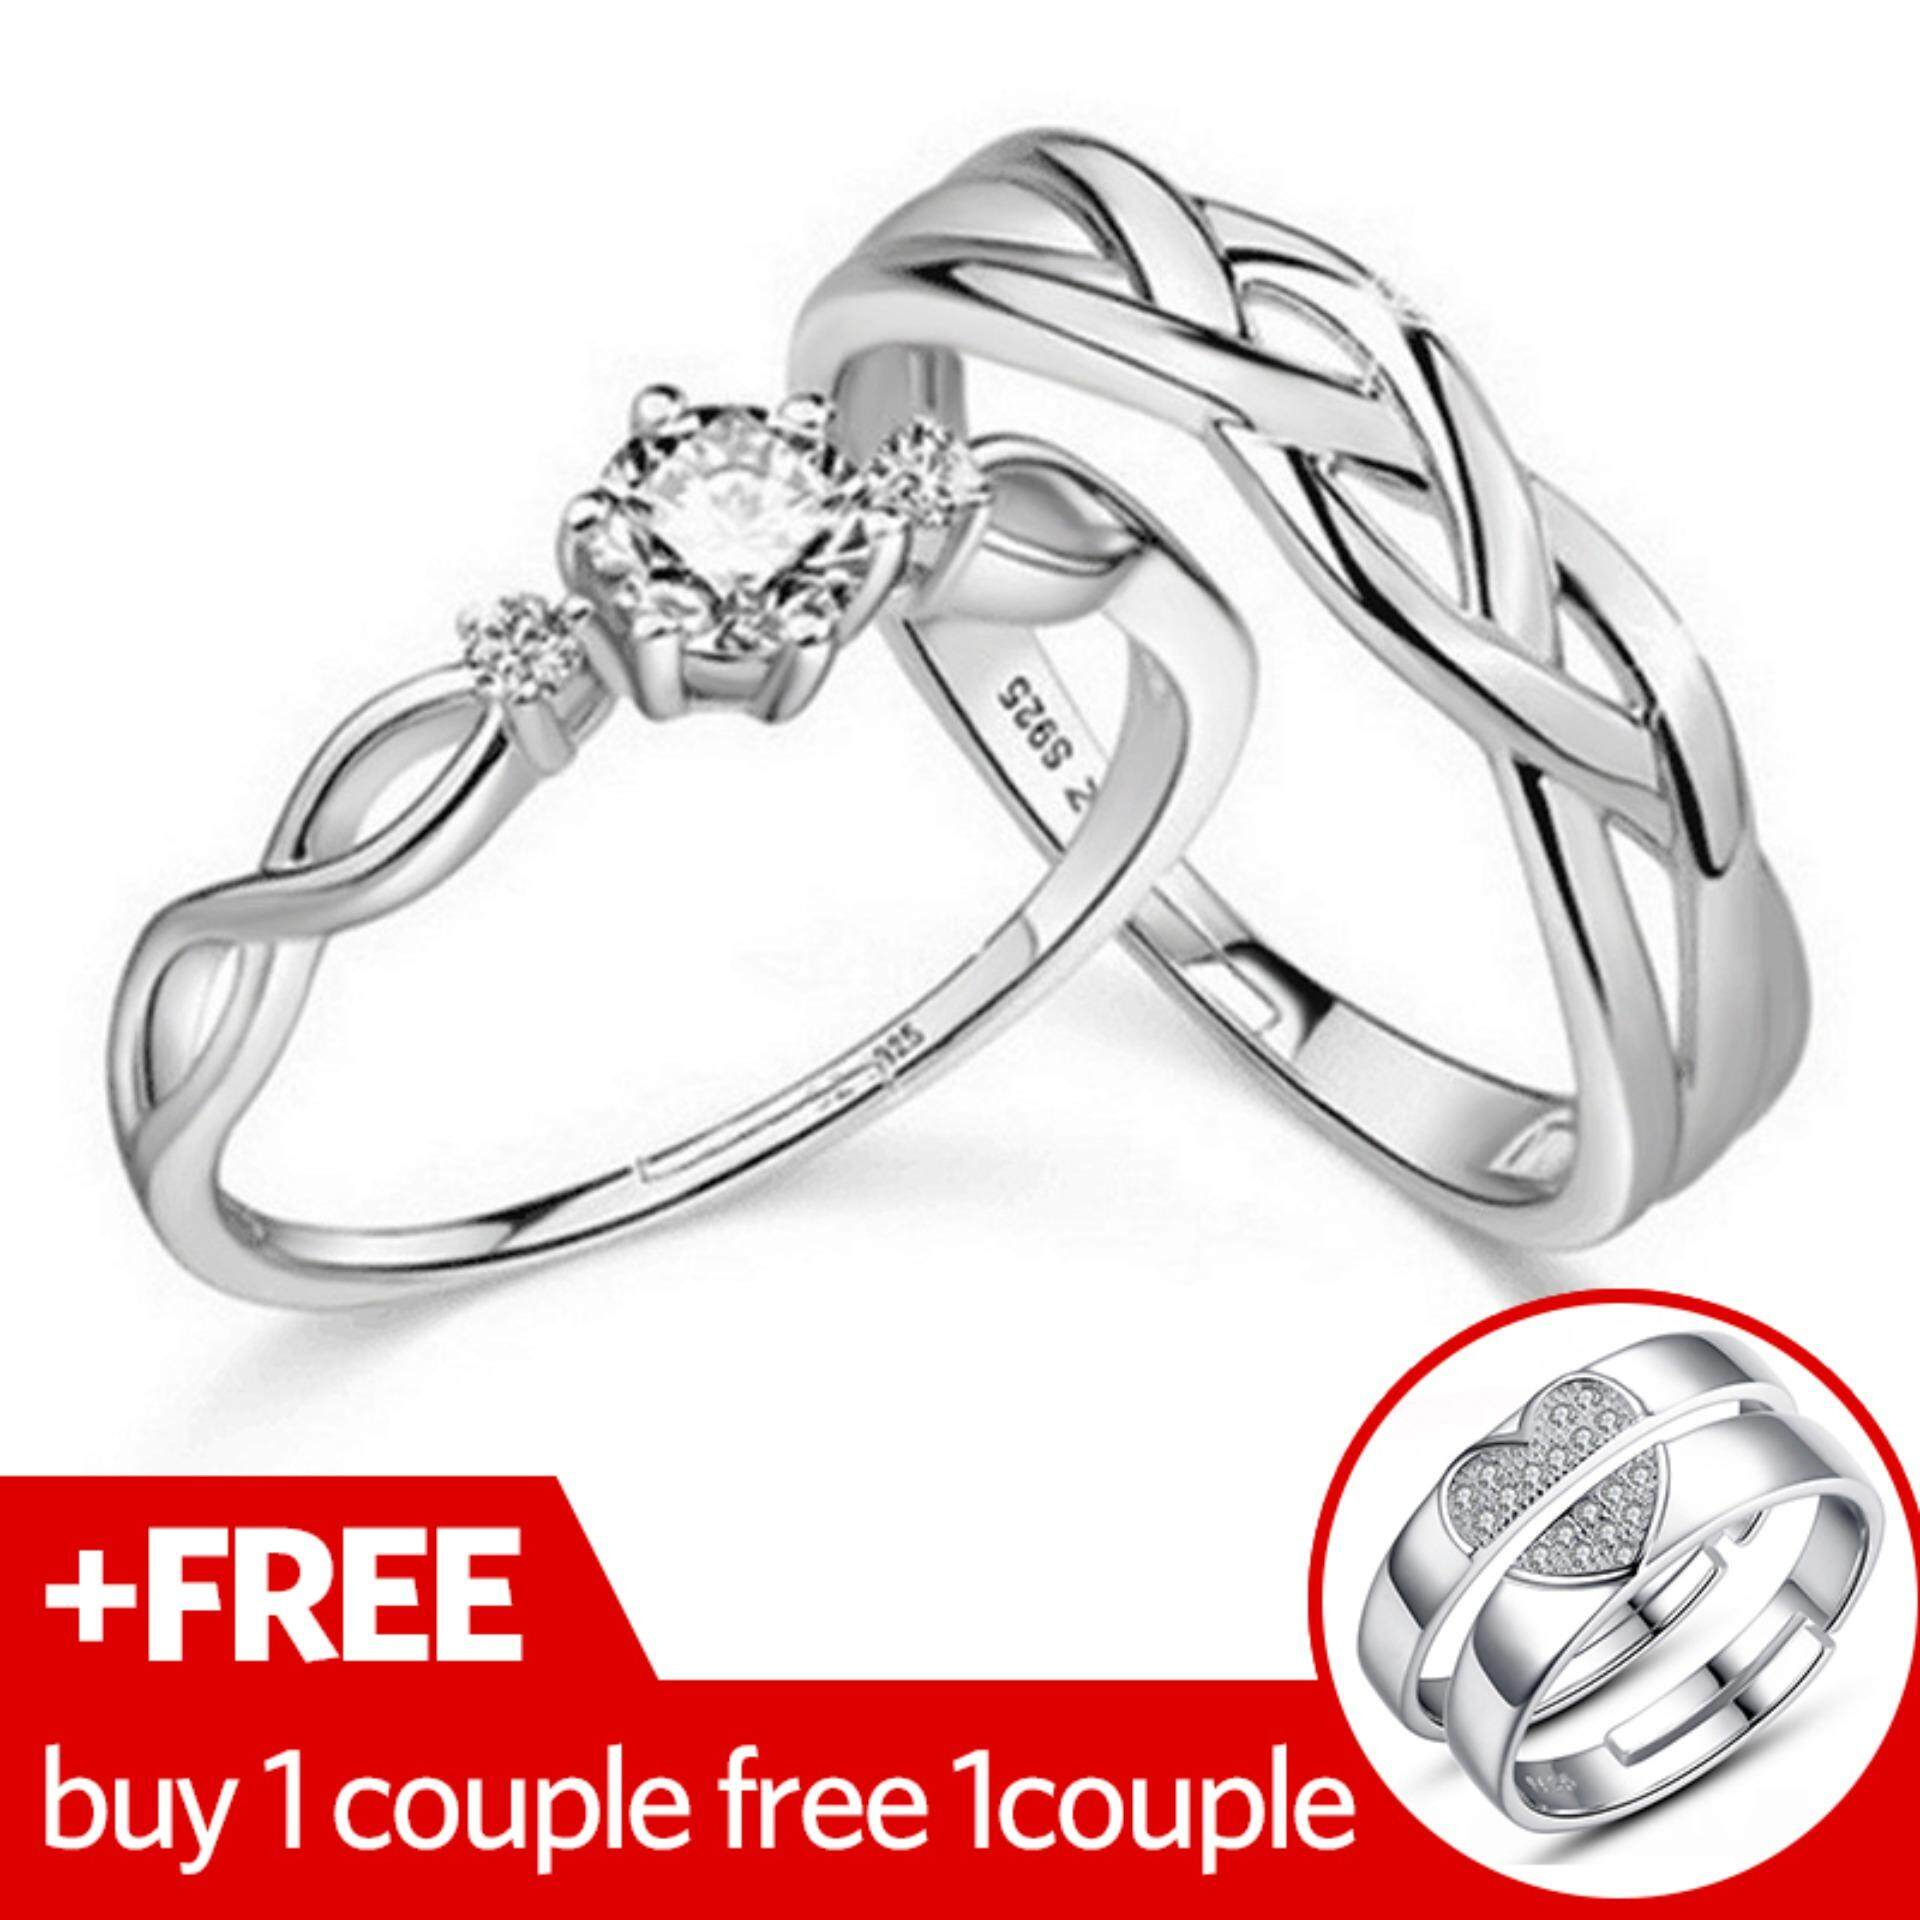 idx argento couple engagement silver product coppia fidanzamento anelli fedine incisione extra incision rings big